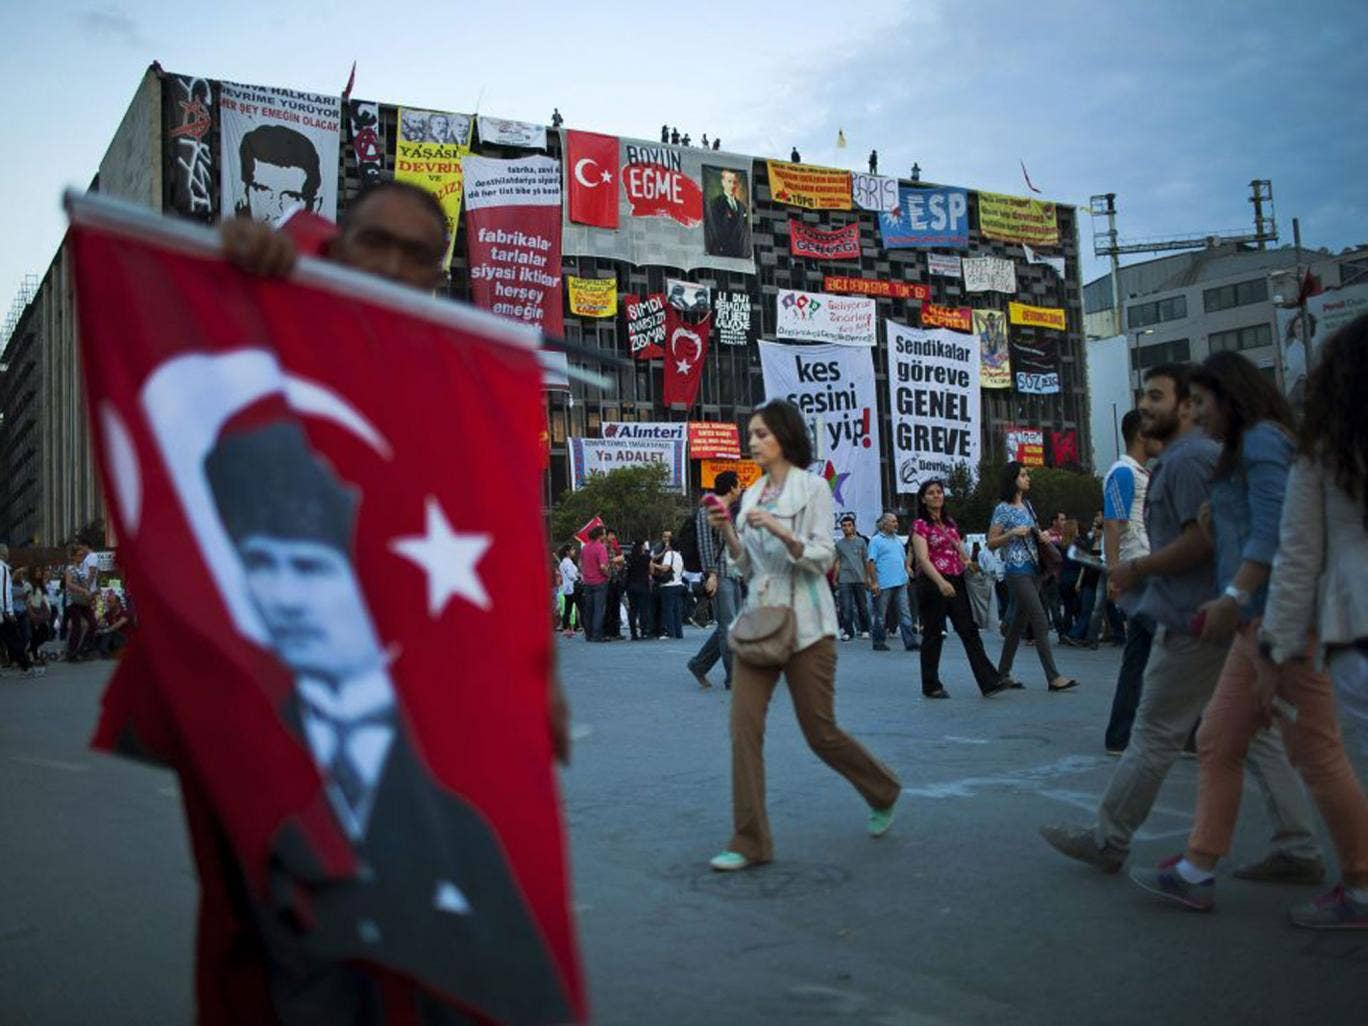 The government miscalculated its response to the demos in Istanbul